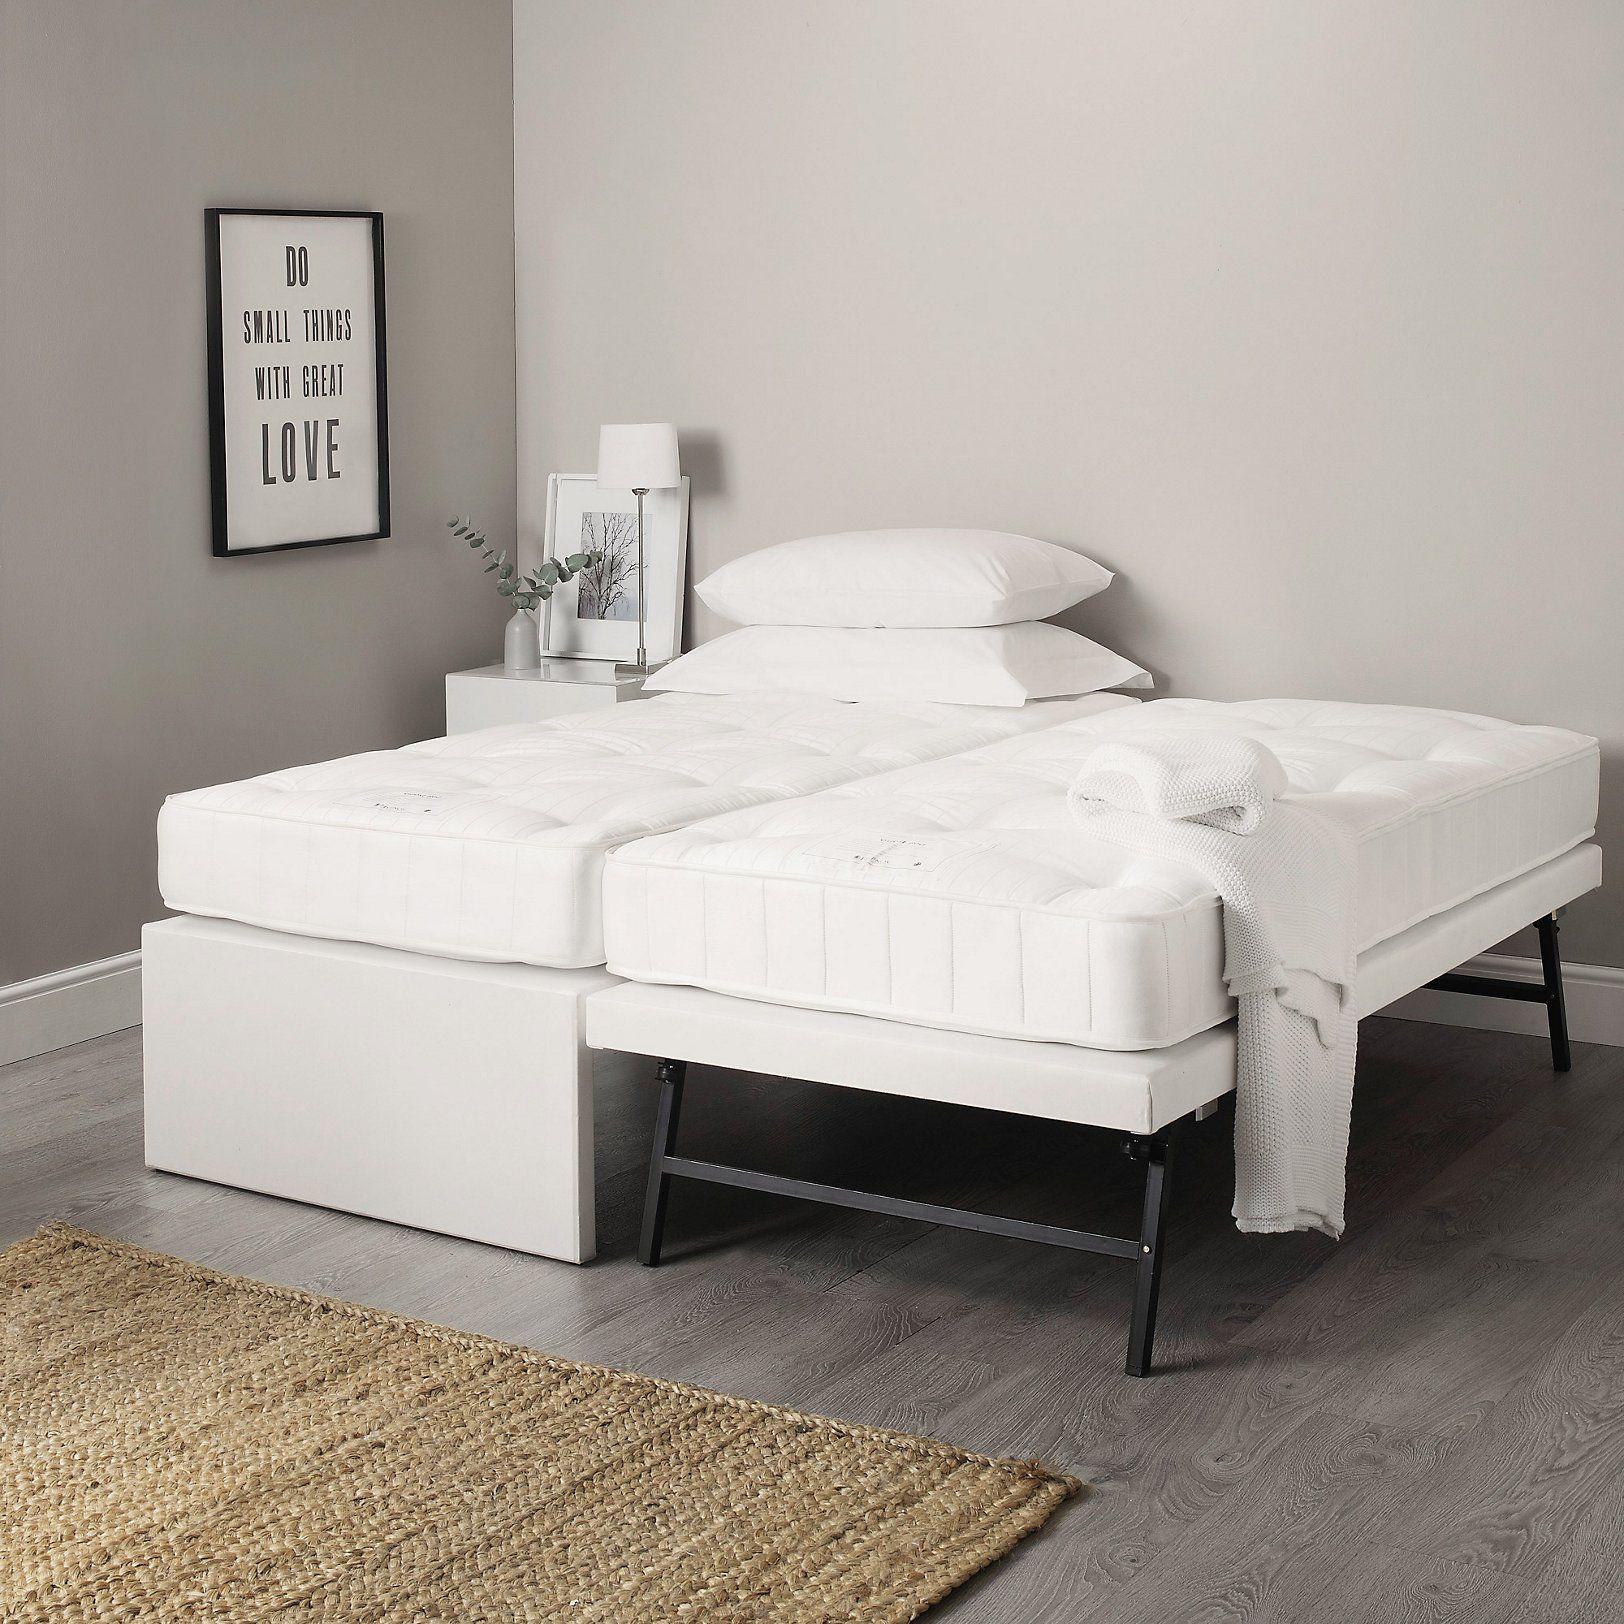 Single Divan & Guest Bed Beds The White Company in